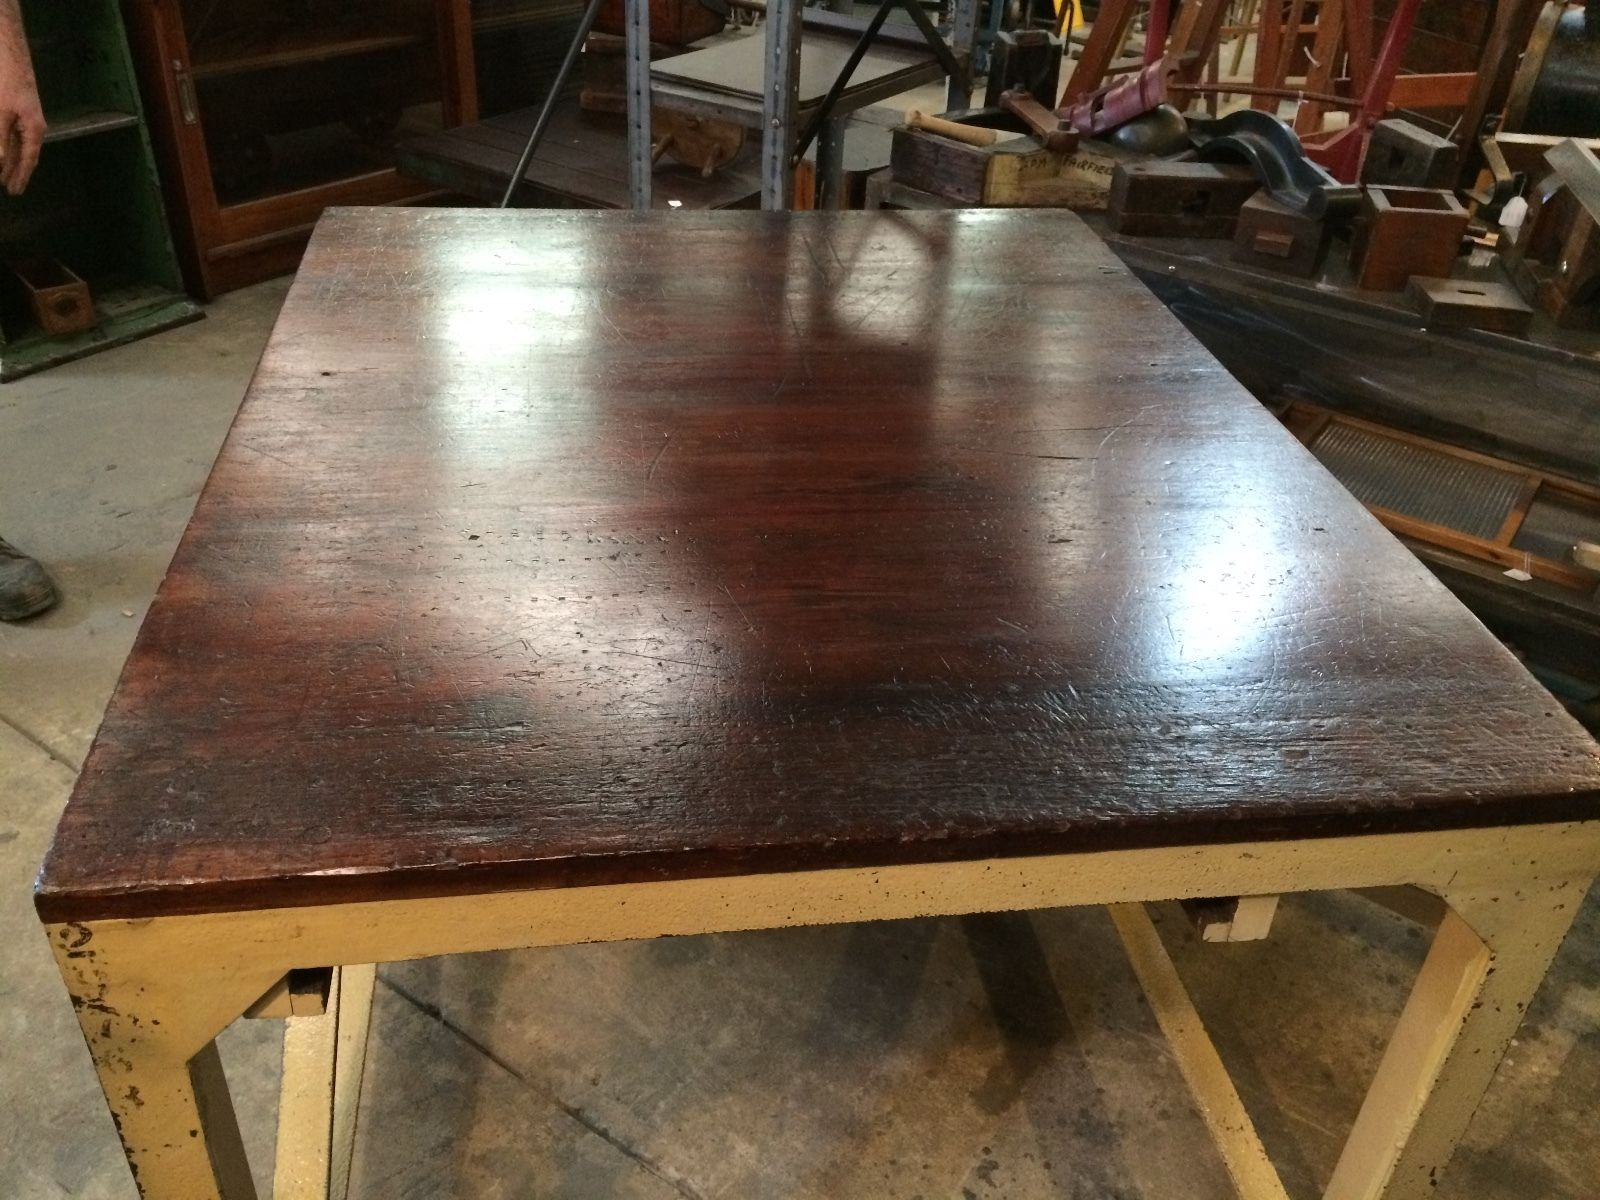 Vintage Industrial Rustic Table Work Bench | Melbourne | Halsey Road  Recyclers